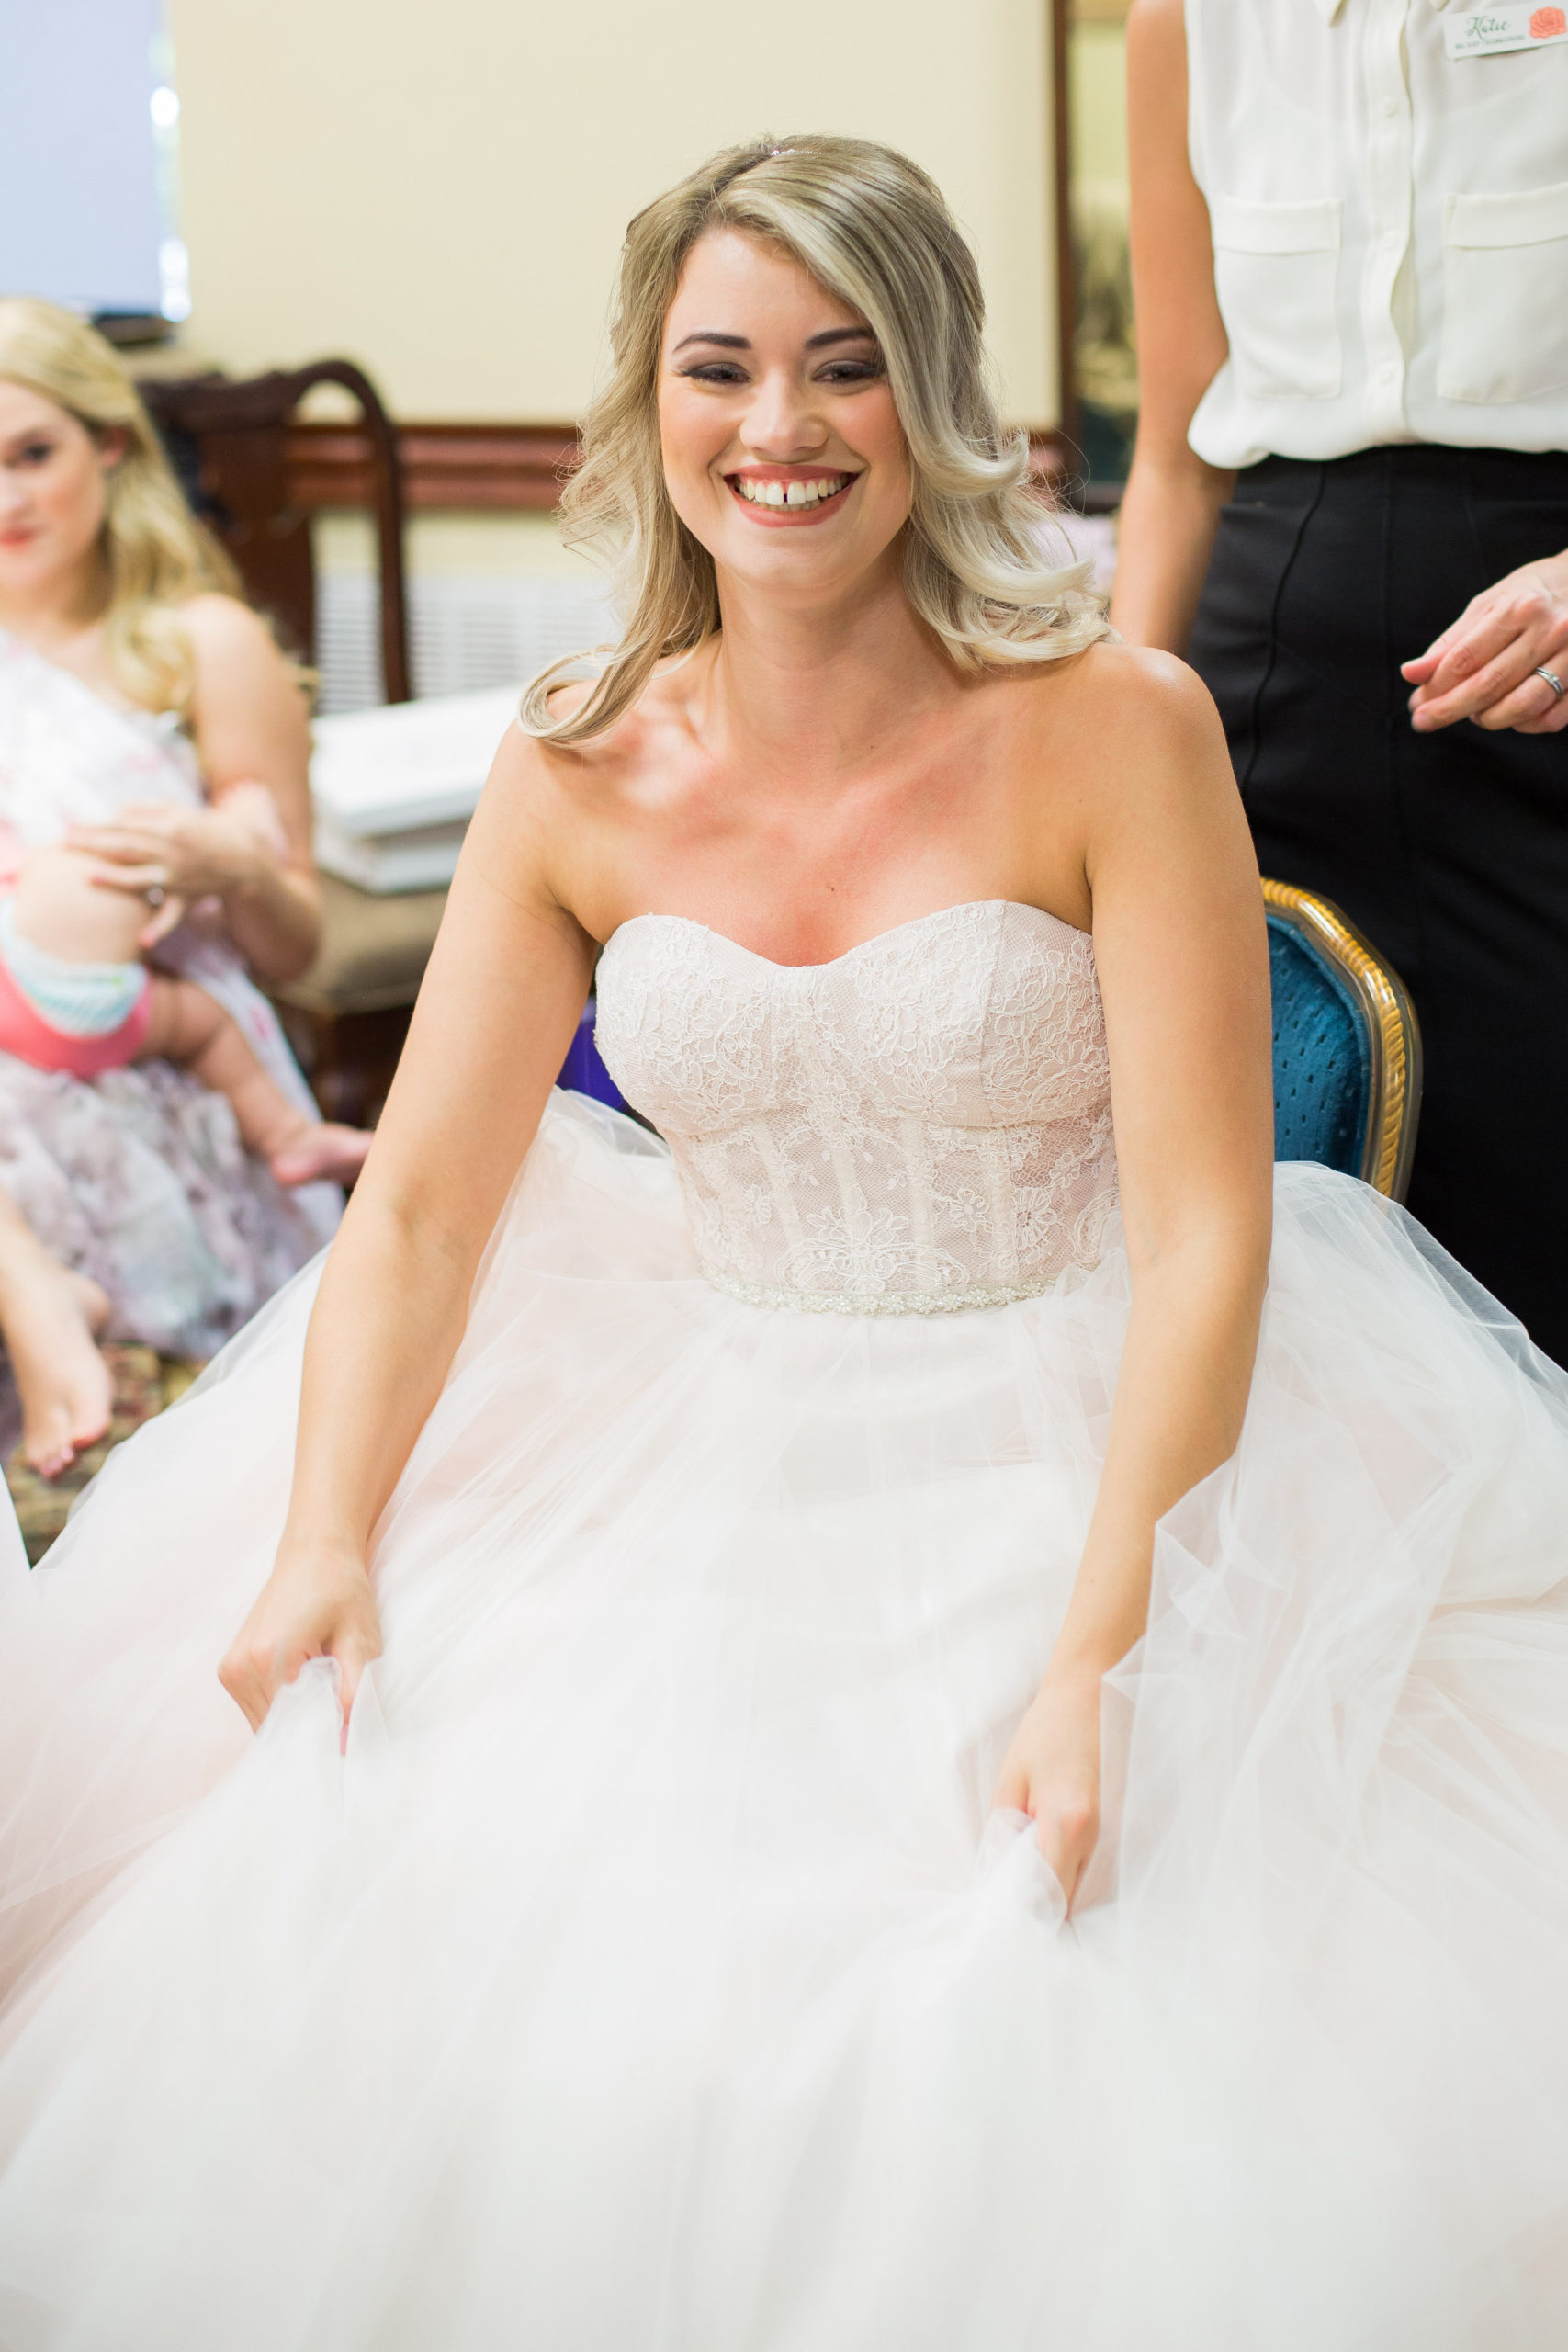 bride sitting on a blue chair in her wedding dress smiling